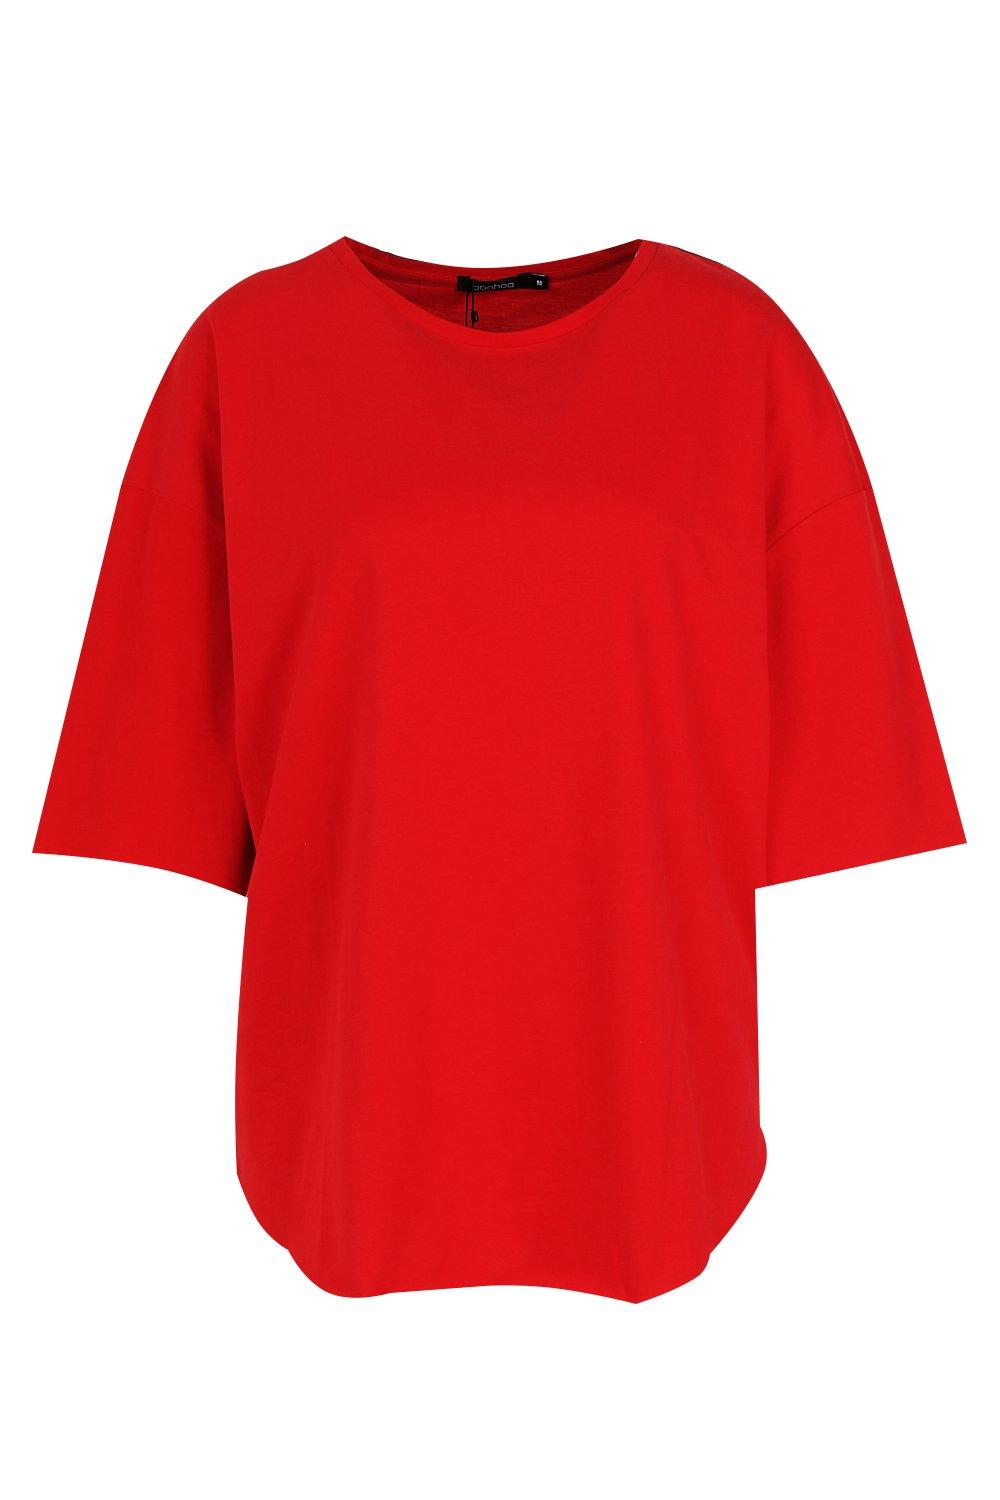 Shirt Oversized Supersoft Oversized T red Shirt Supersoft T red xRx0Zawq